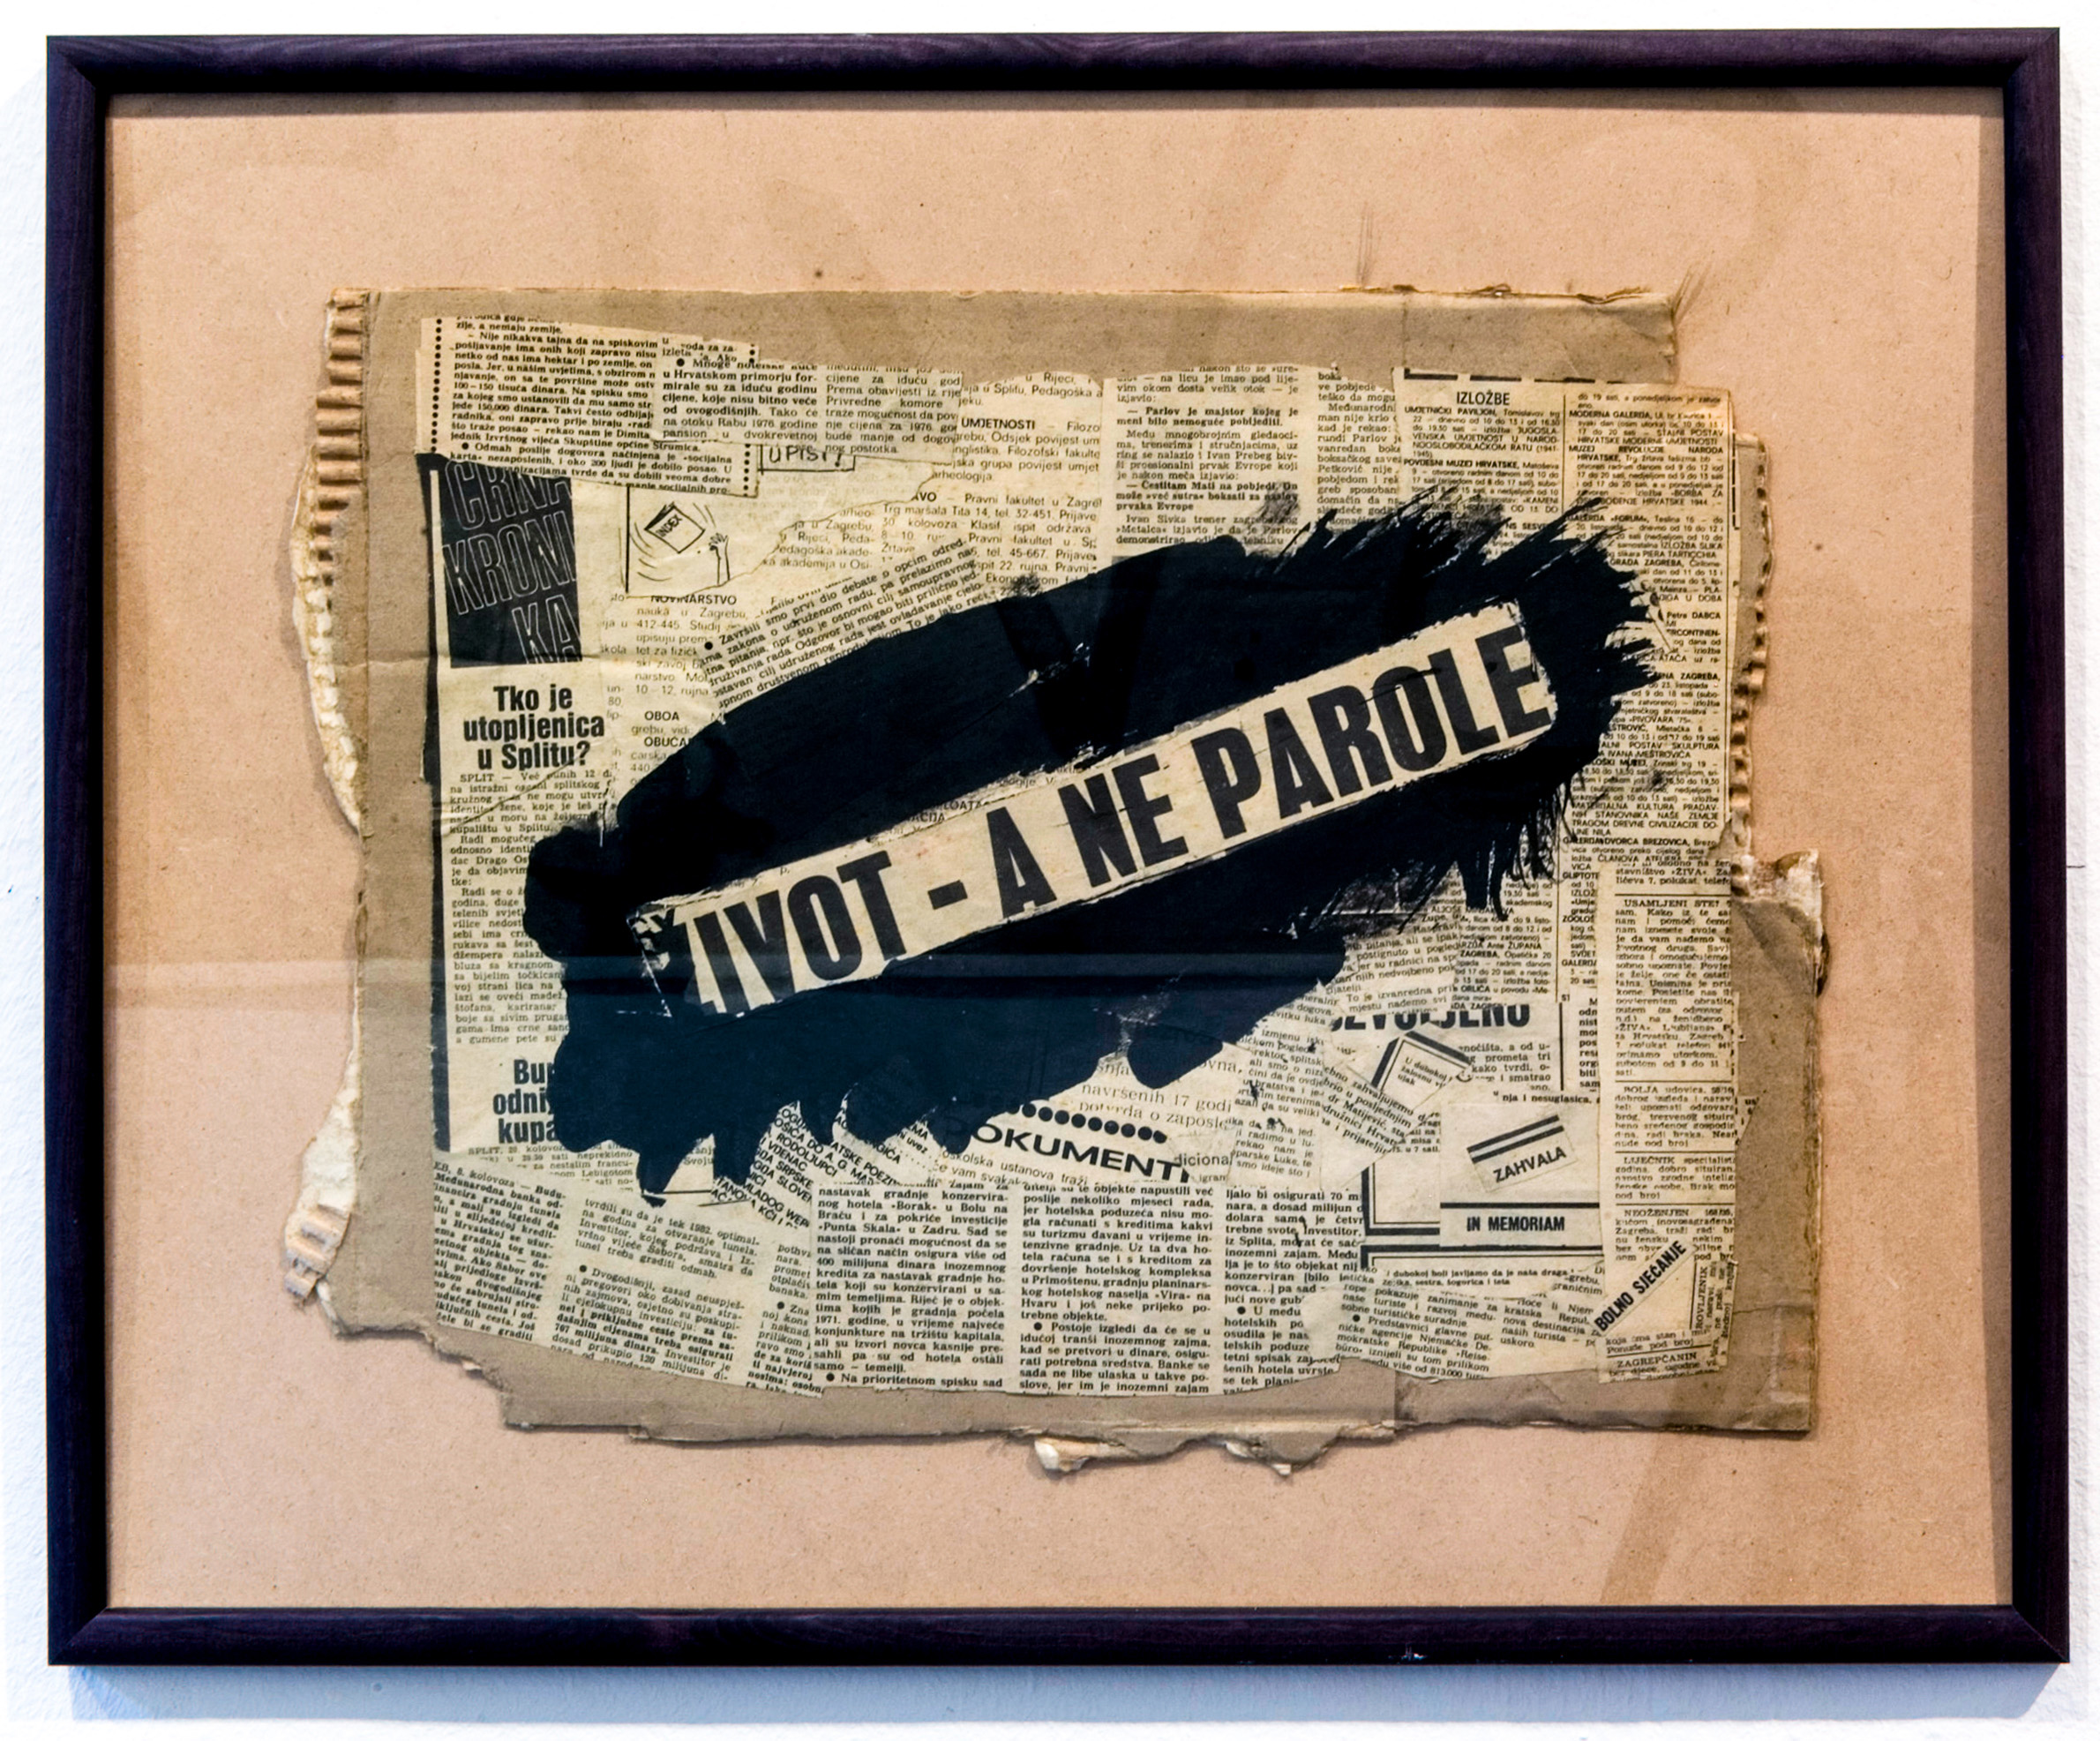 LIFE - BUT NO SLOGANS (1974) collage